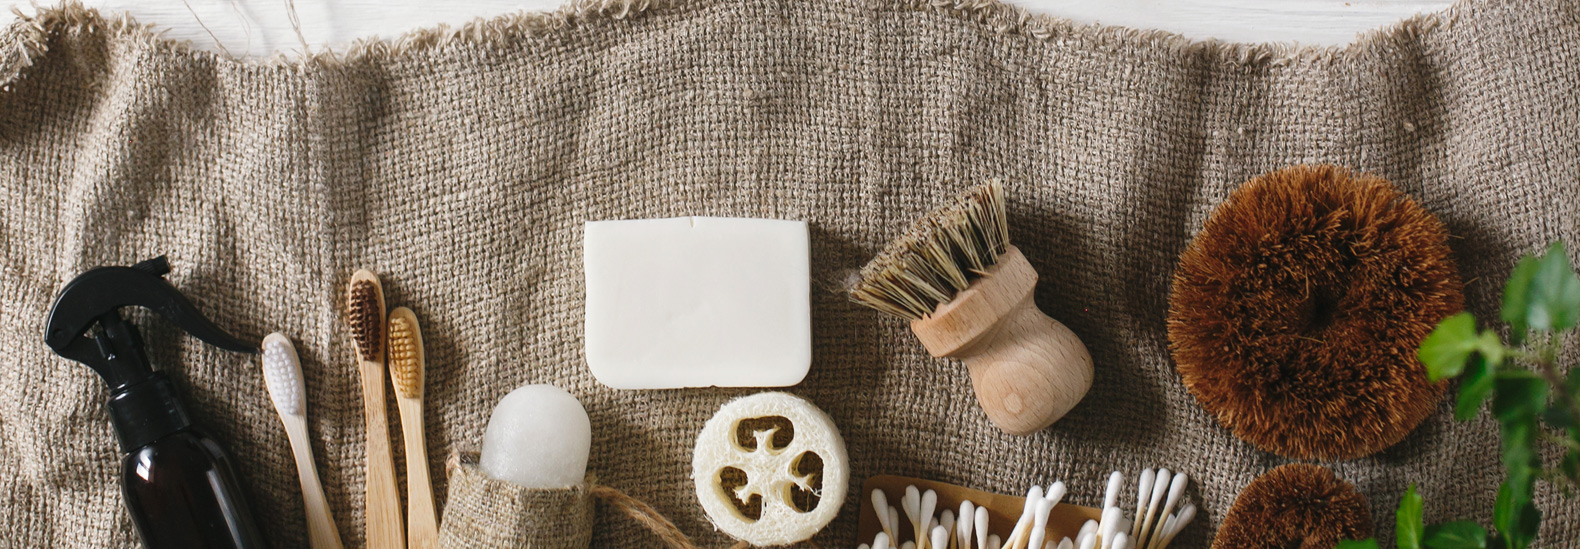 Eco-friendly replacements for common bathroom products